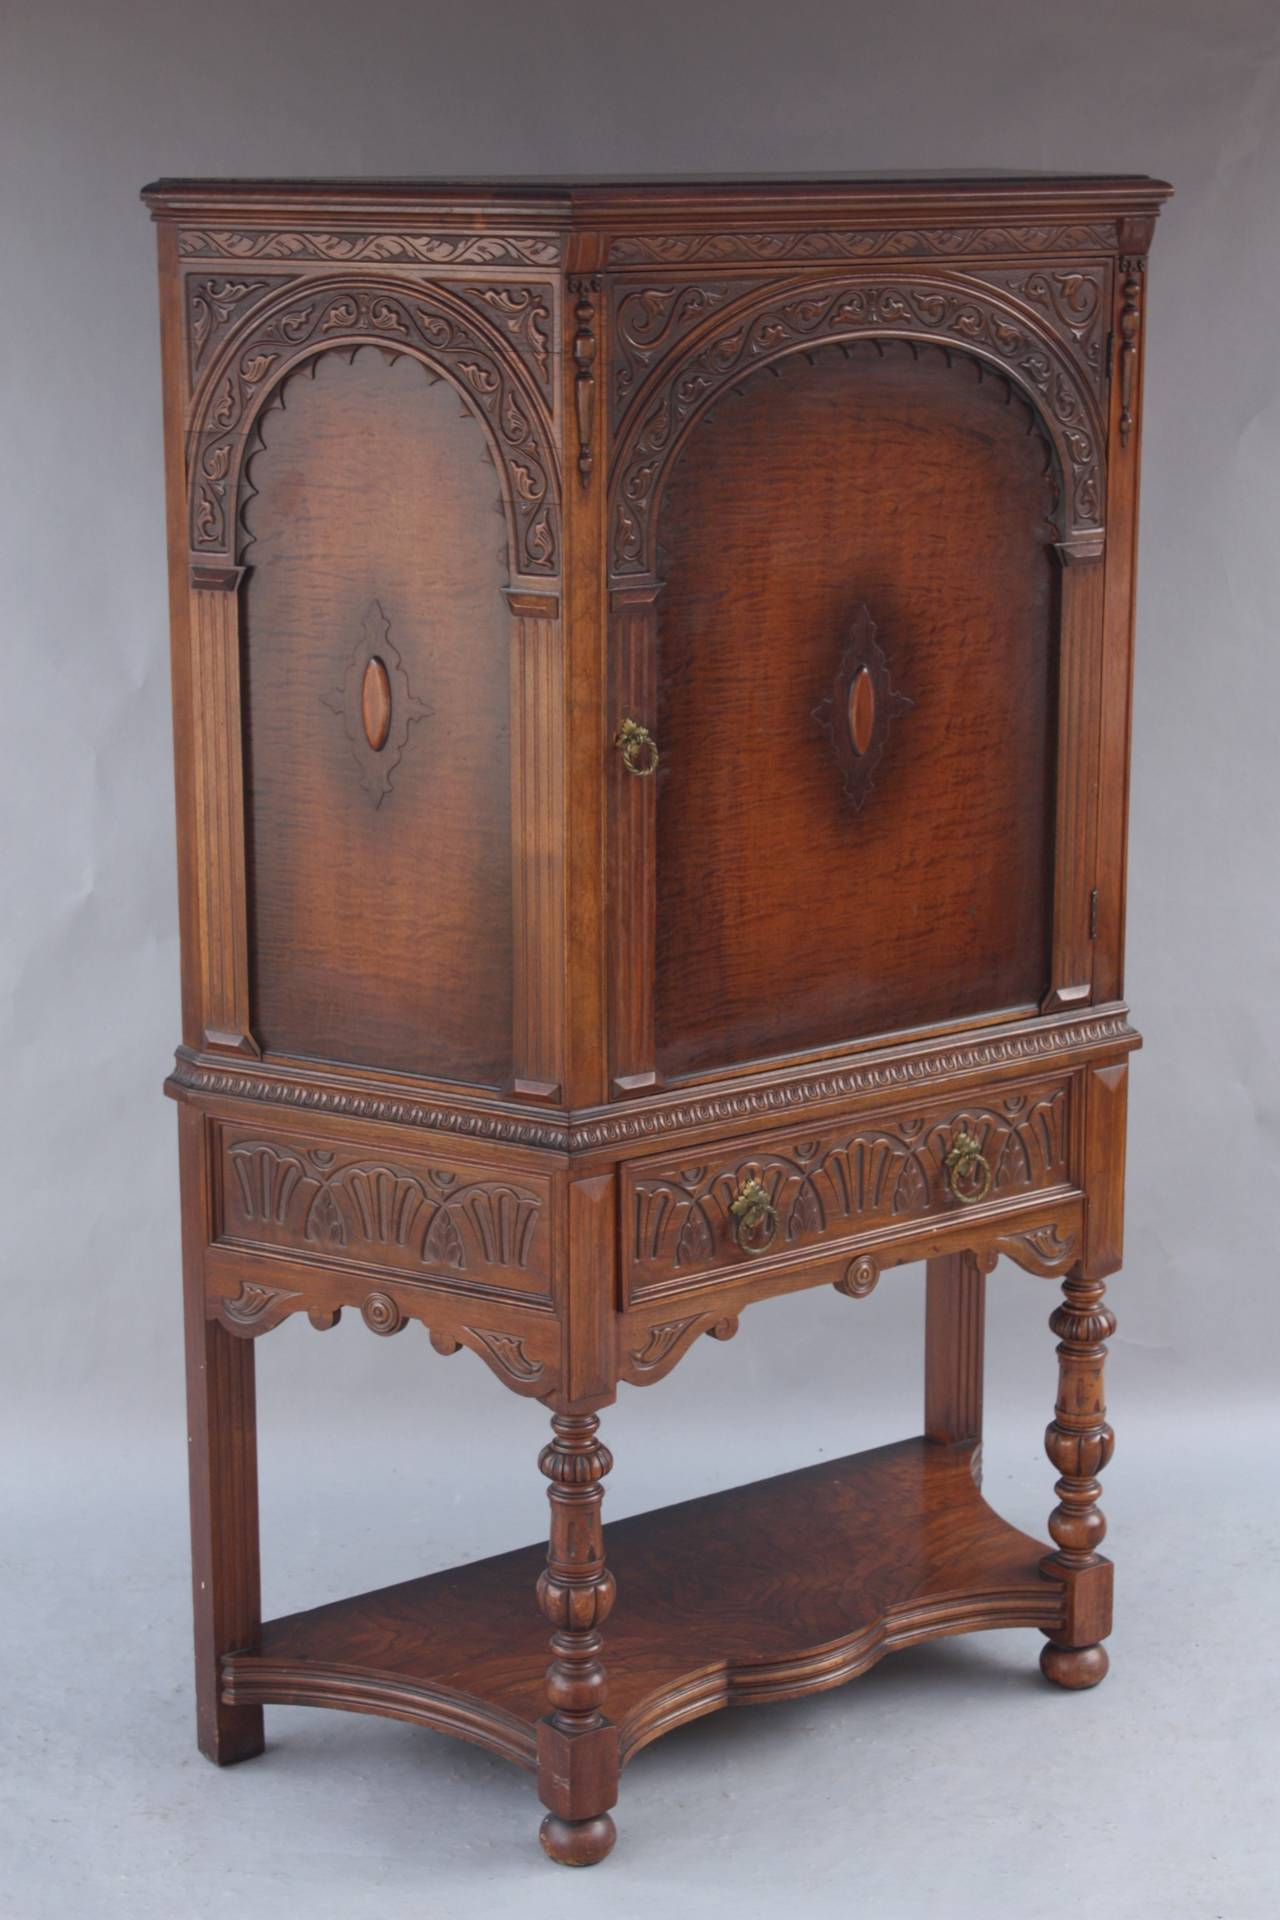 Spanish Revival Walnut Cabinet For Sale at 1stdibs